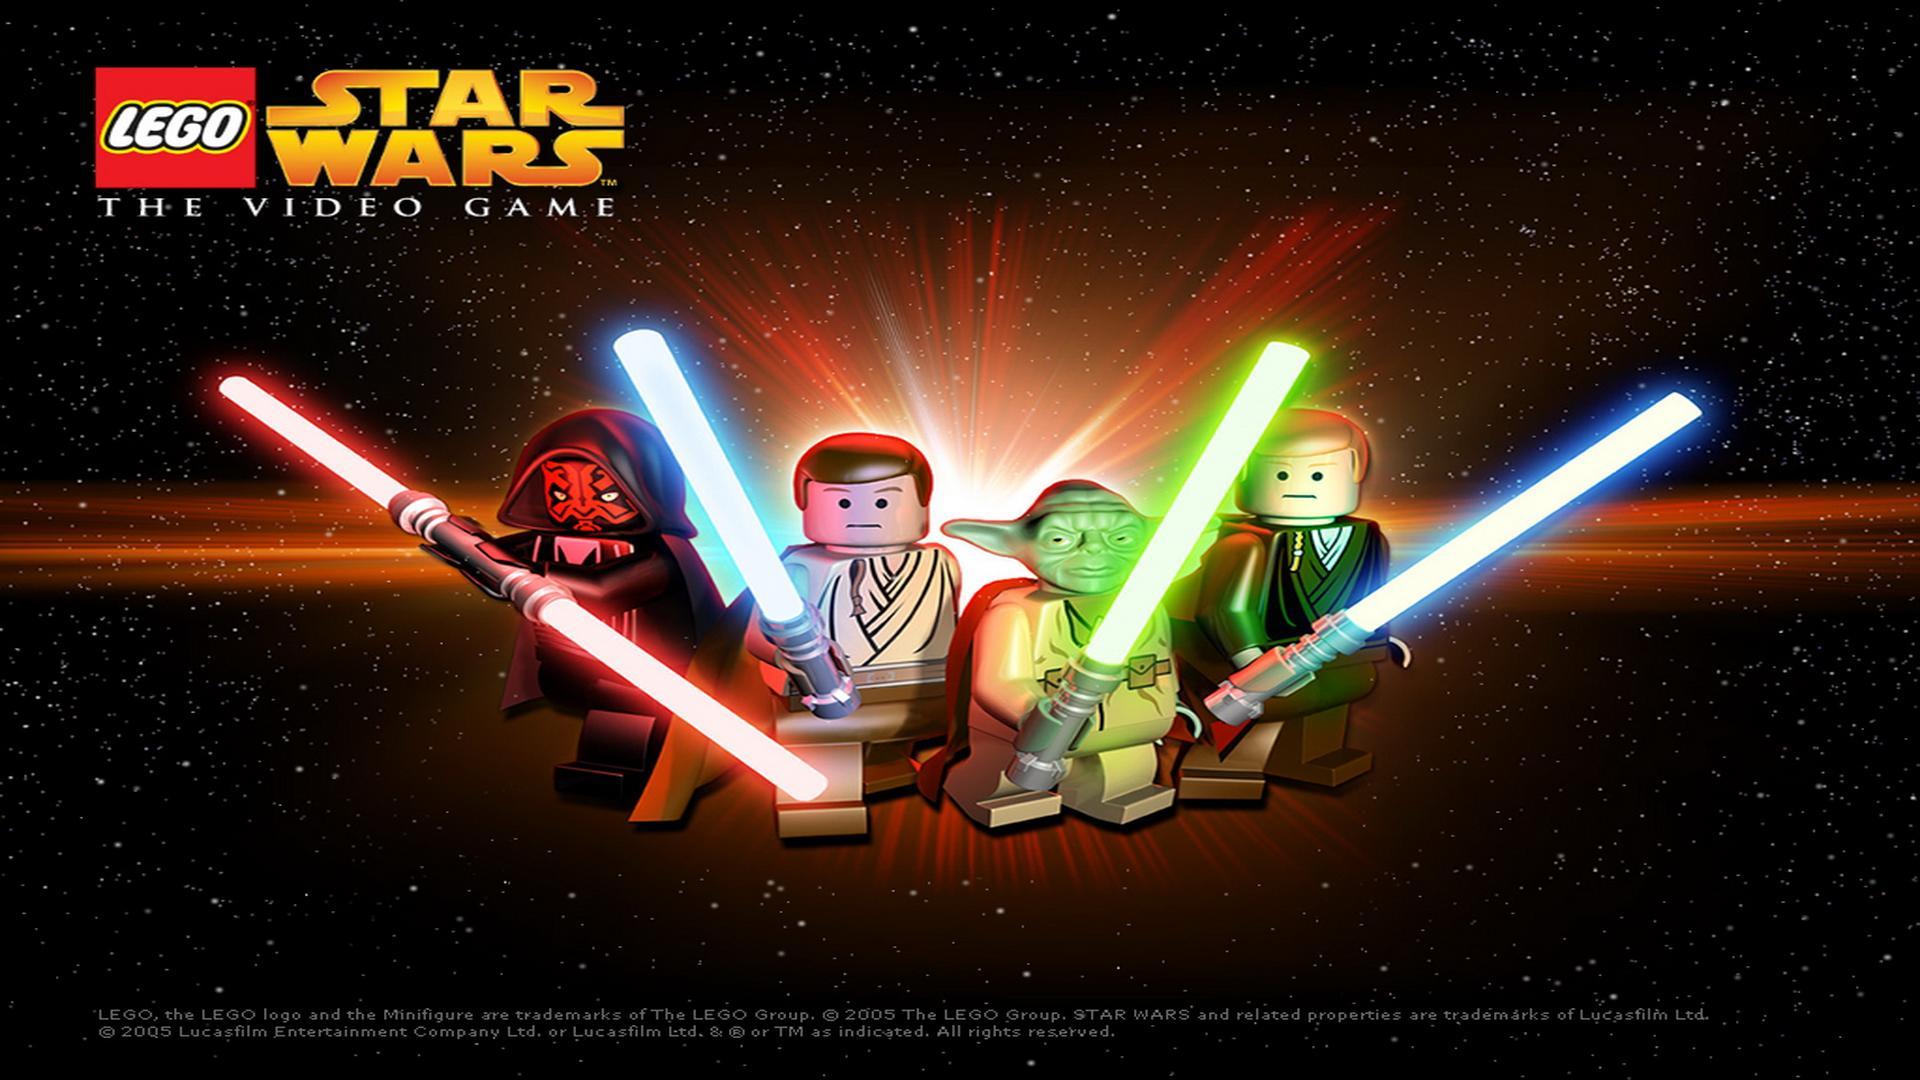 Lego Star Wars Characters Wallpapers Wallpaper Cave